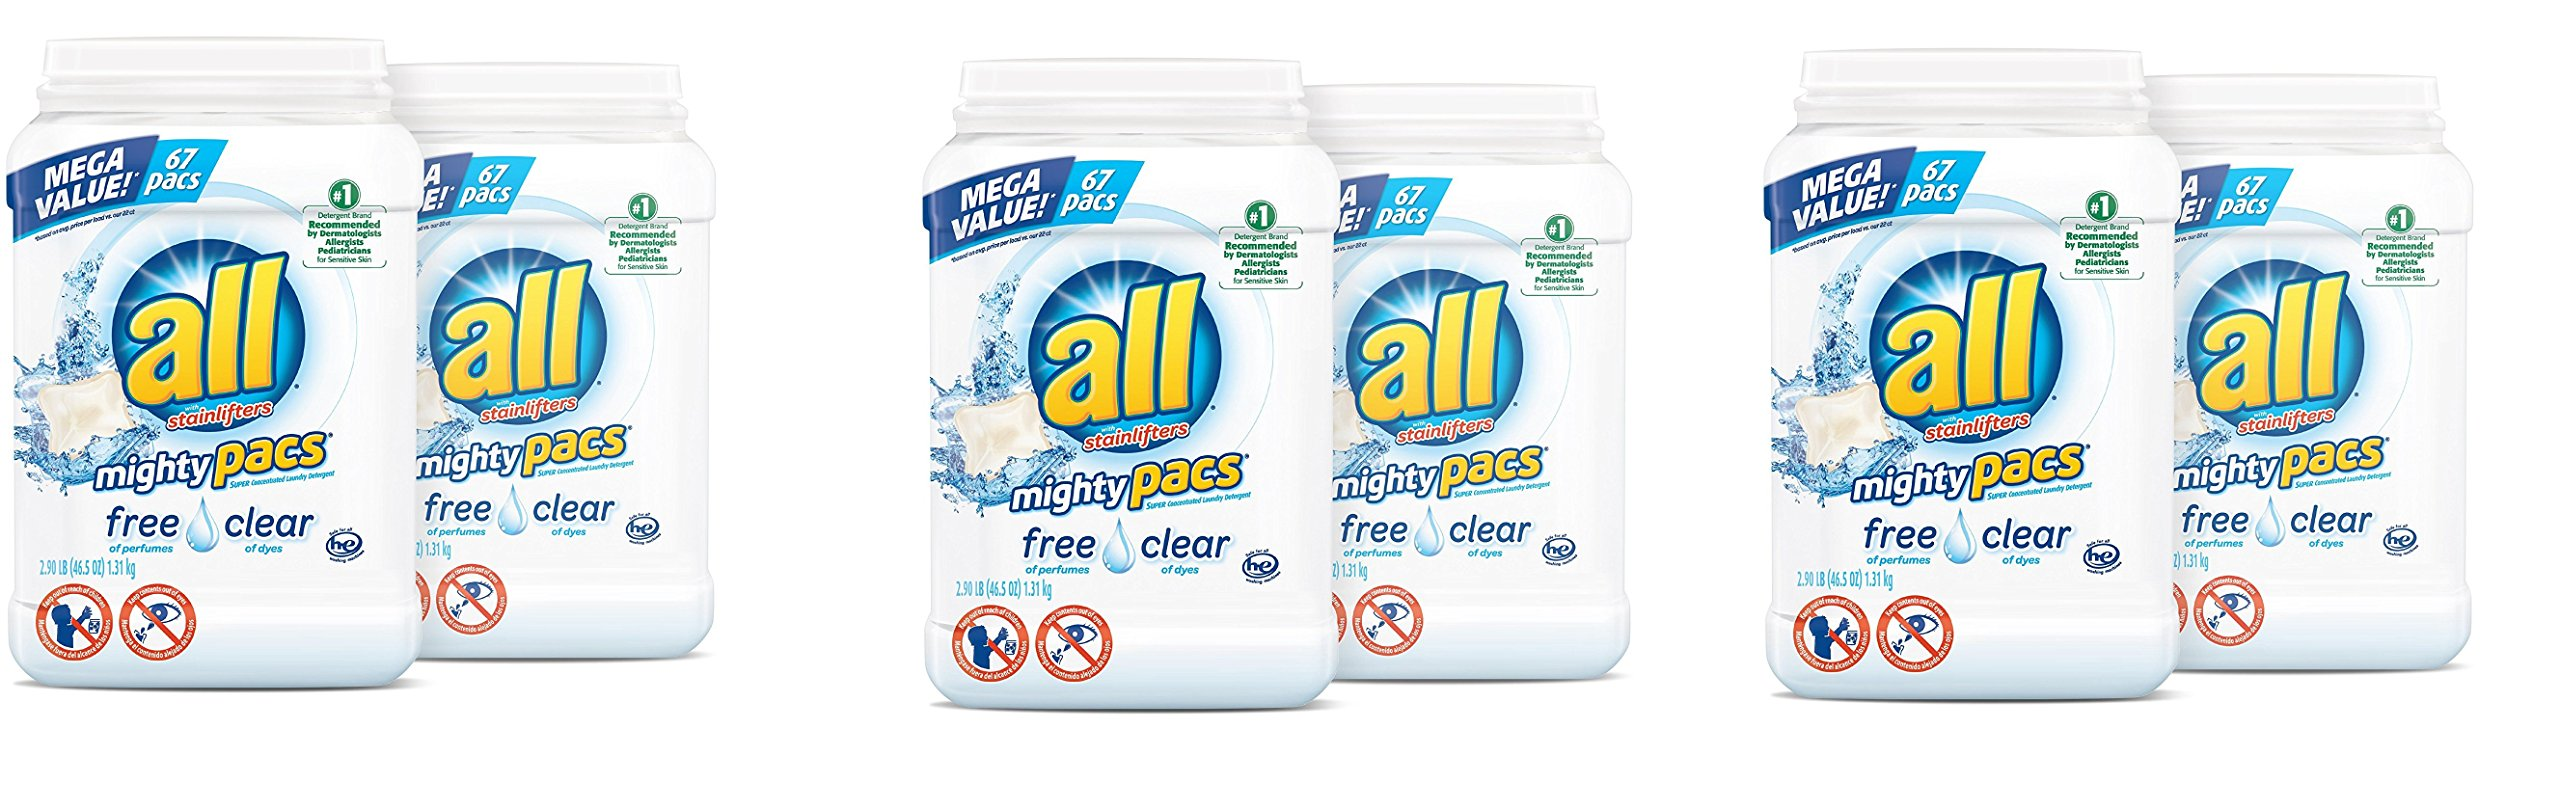 all Mighty Pacs Laundry Detergent, Free Clear for Sensitive Skin, 67 Count, 2 Tubs, 134 Total Loads (3 - case)